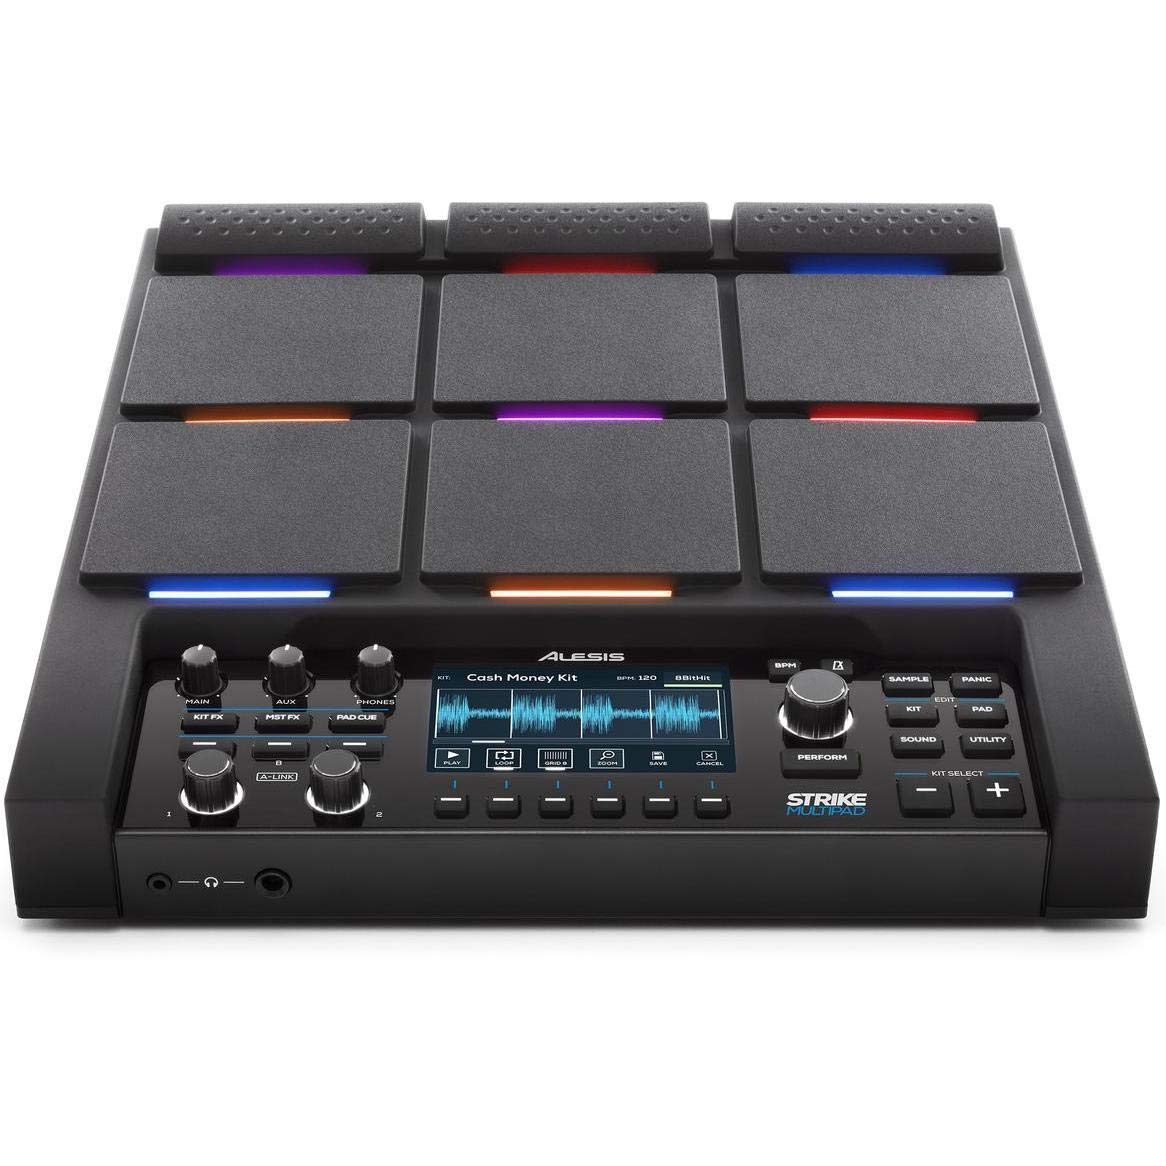 Strike MultiPad Percussion Pad with Sampler and Looper by Alesis